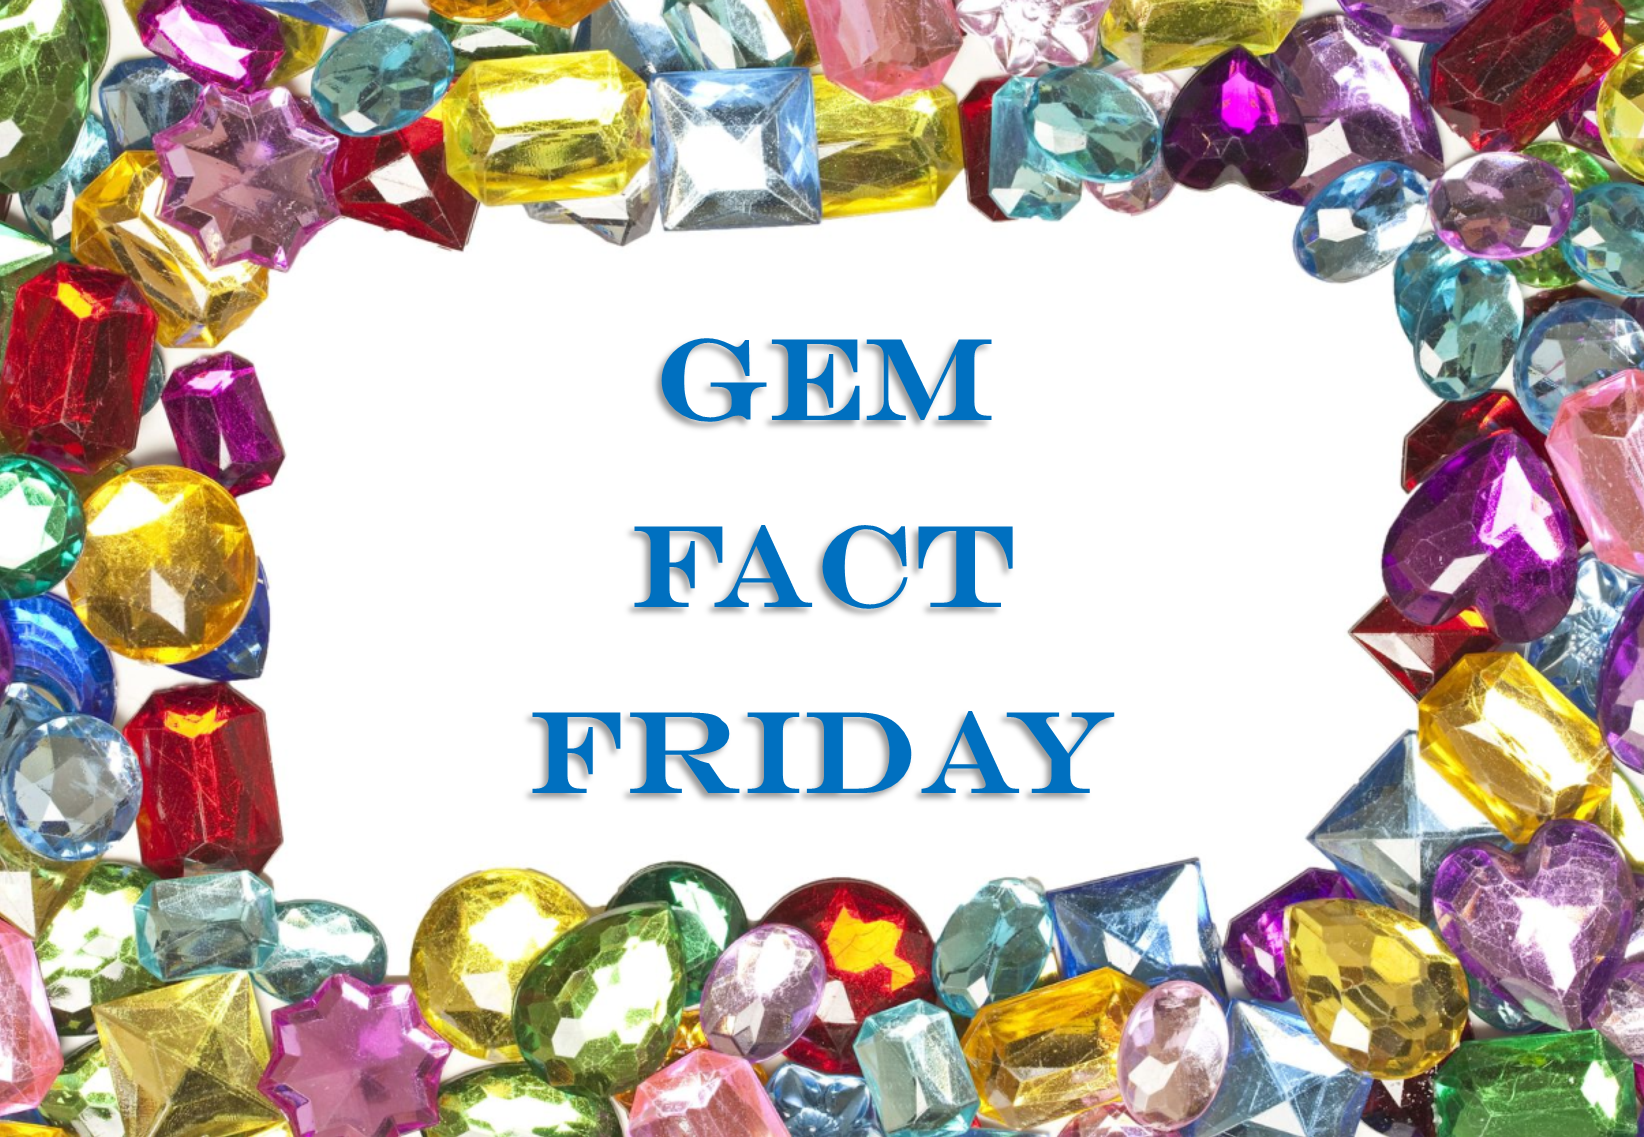 Gem Fact Friday - Spinel